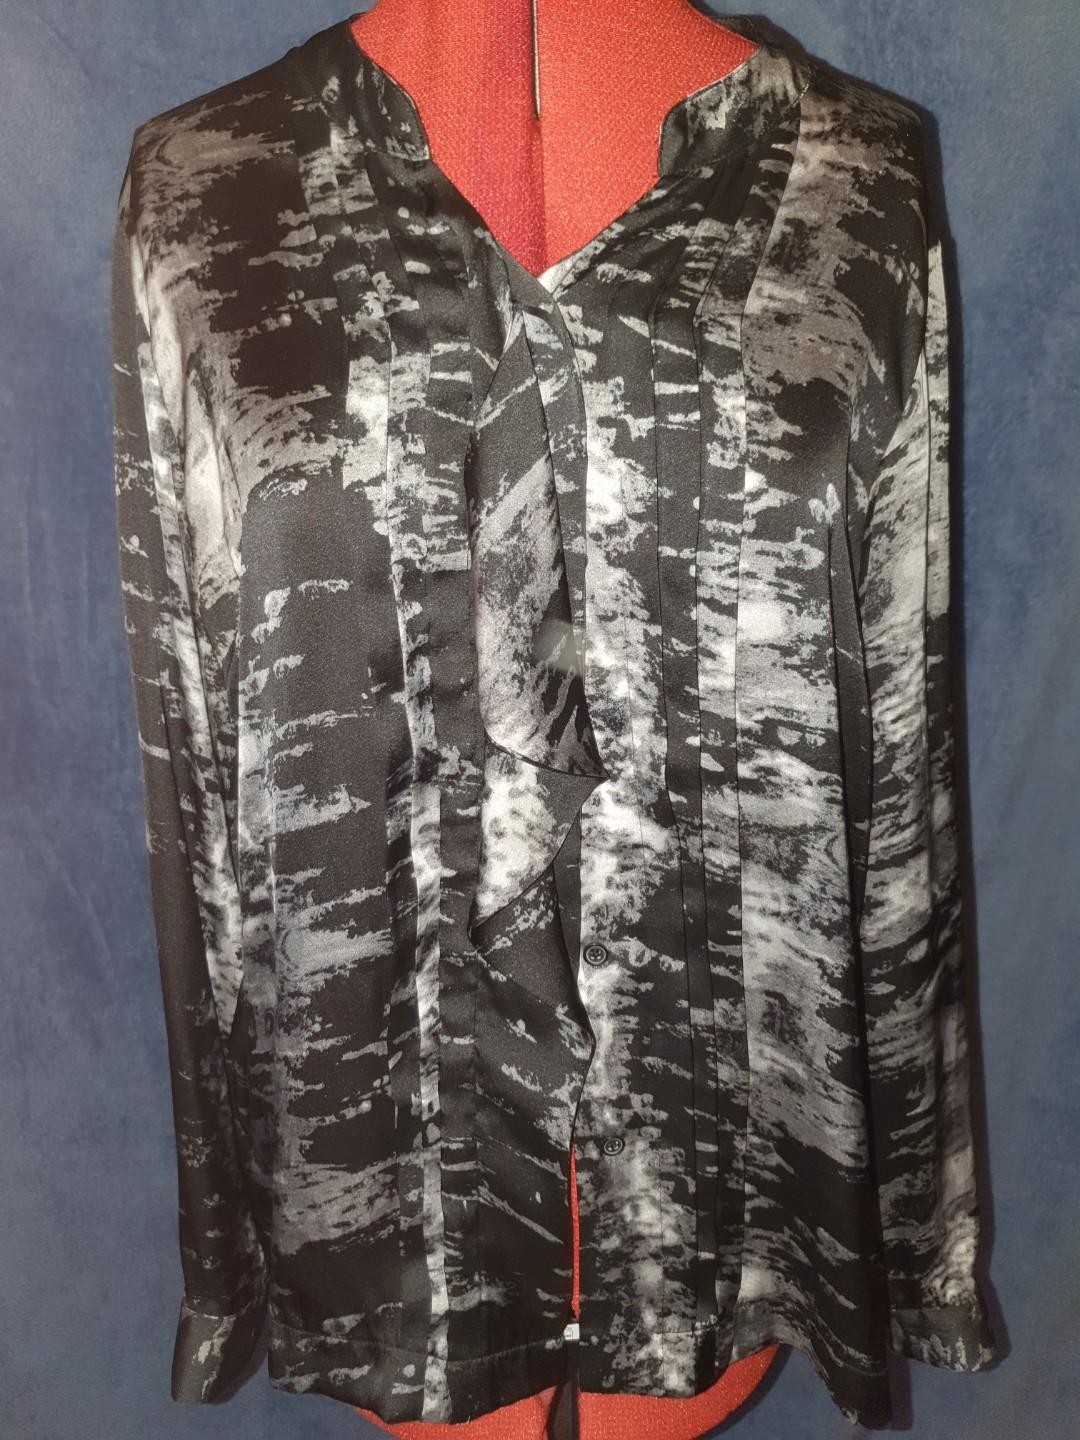 SIROCCO - Button up black and grey patterned shirt